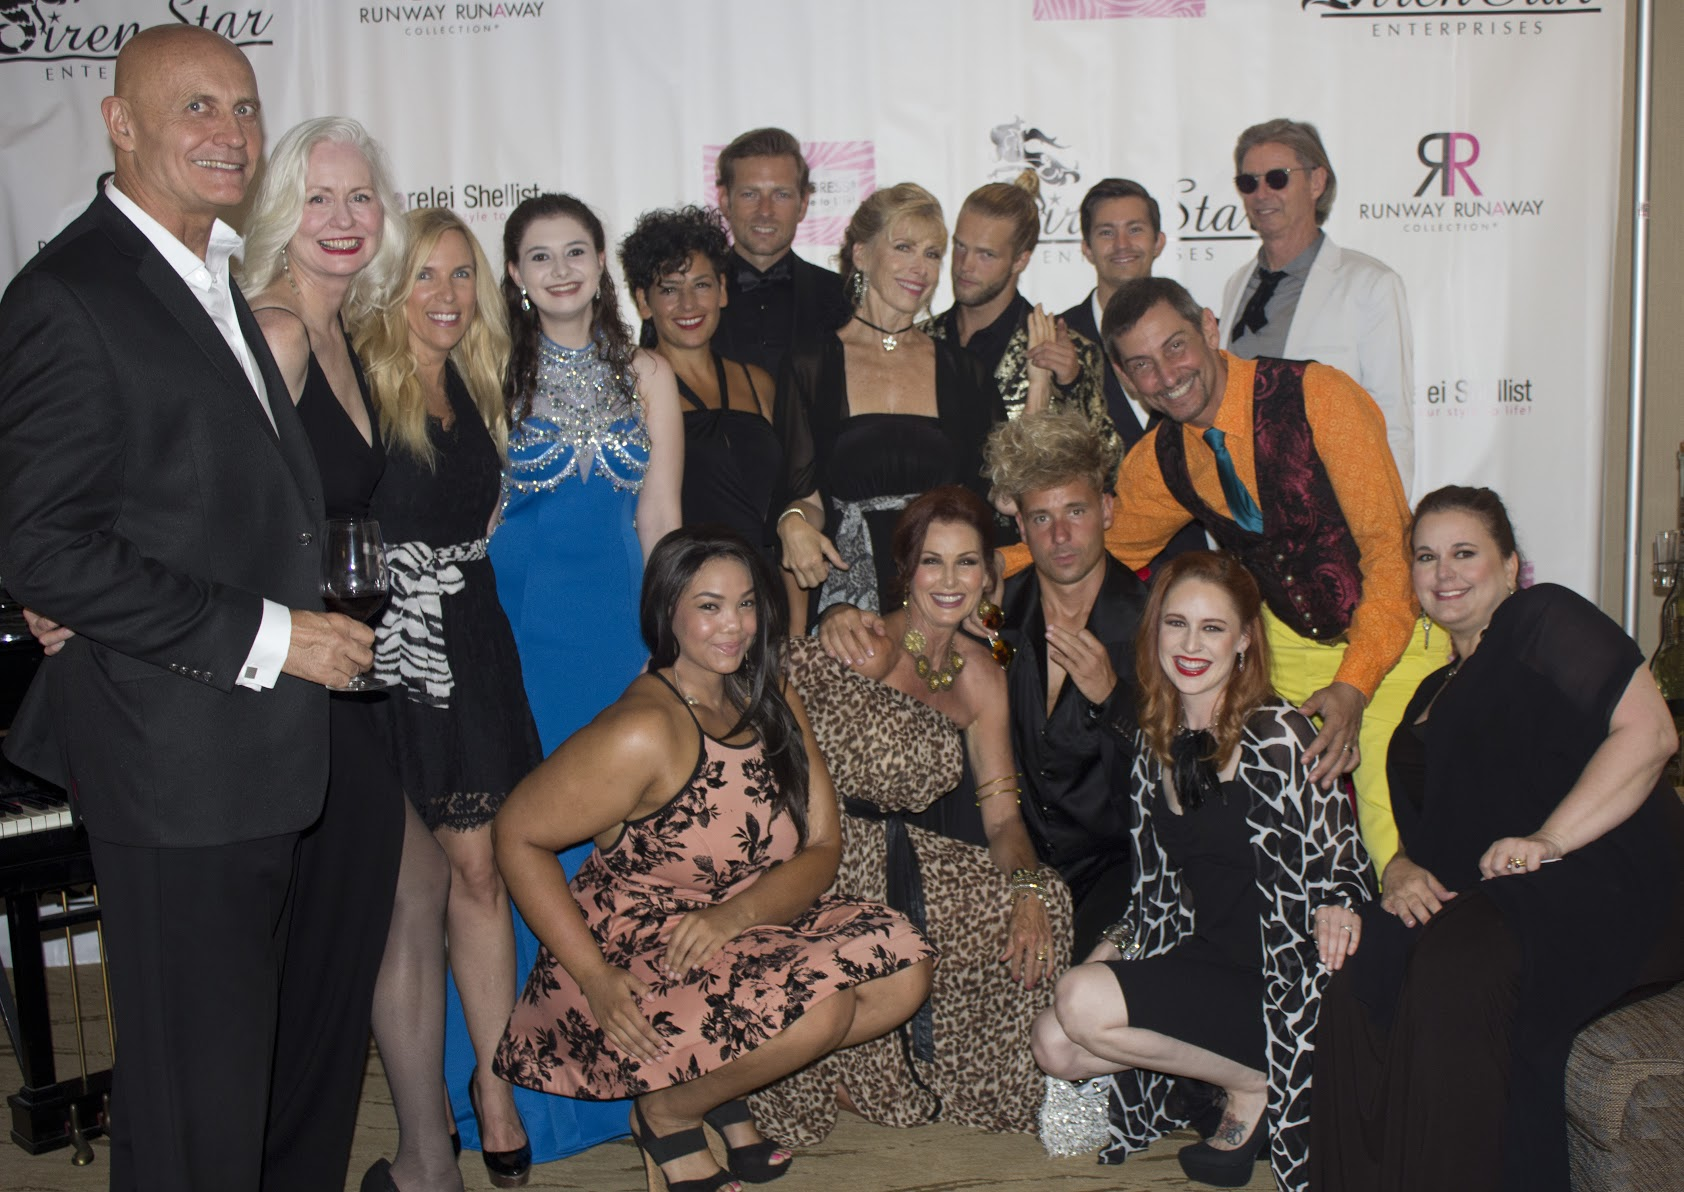 Group Photo at La Jolla Fashion Film Festival Credit: 4Chion Marketing Photographer Raymond Forchion